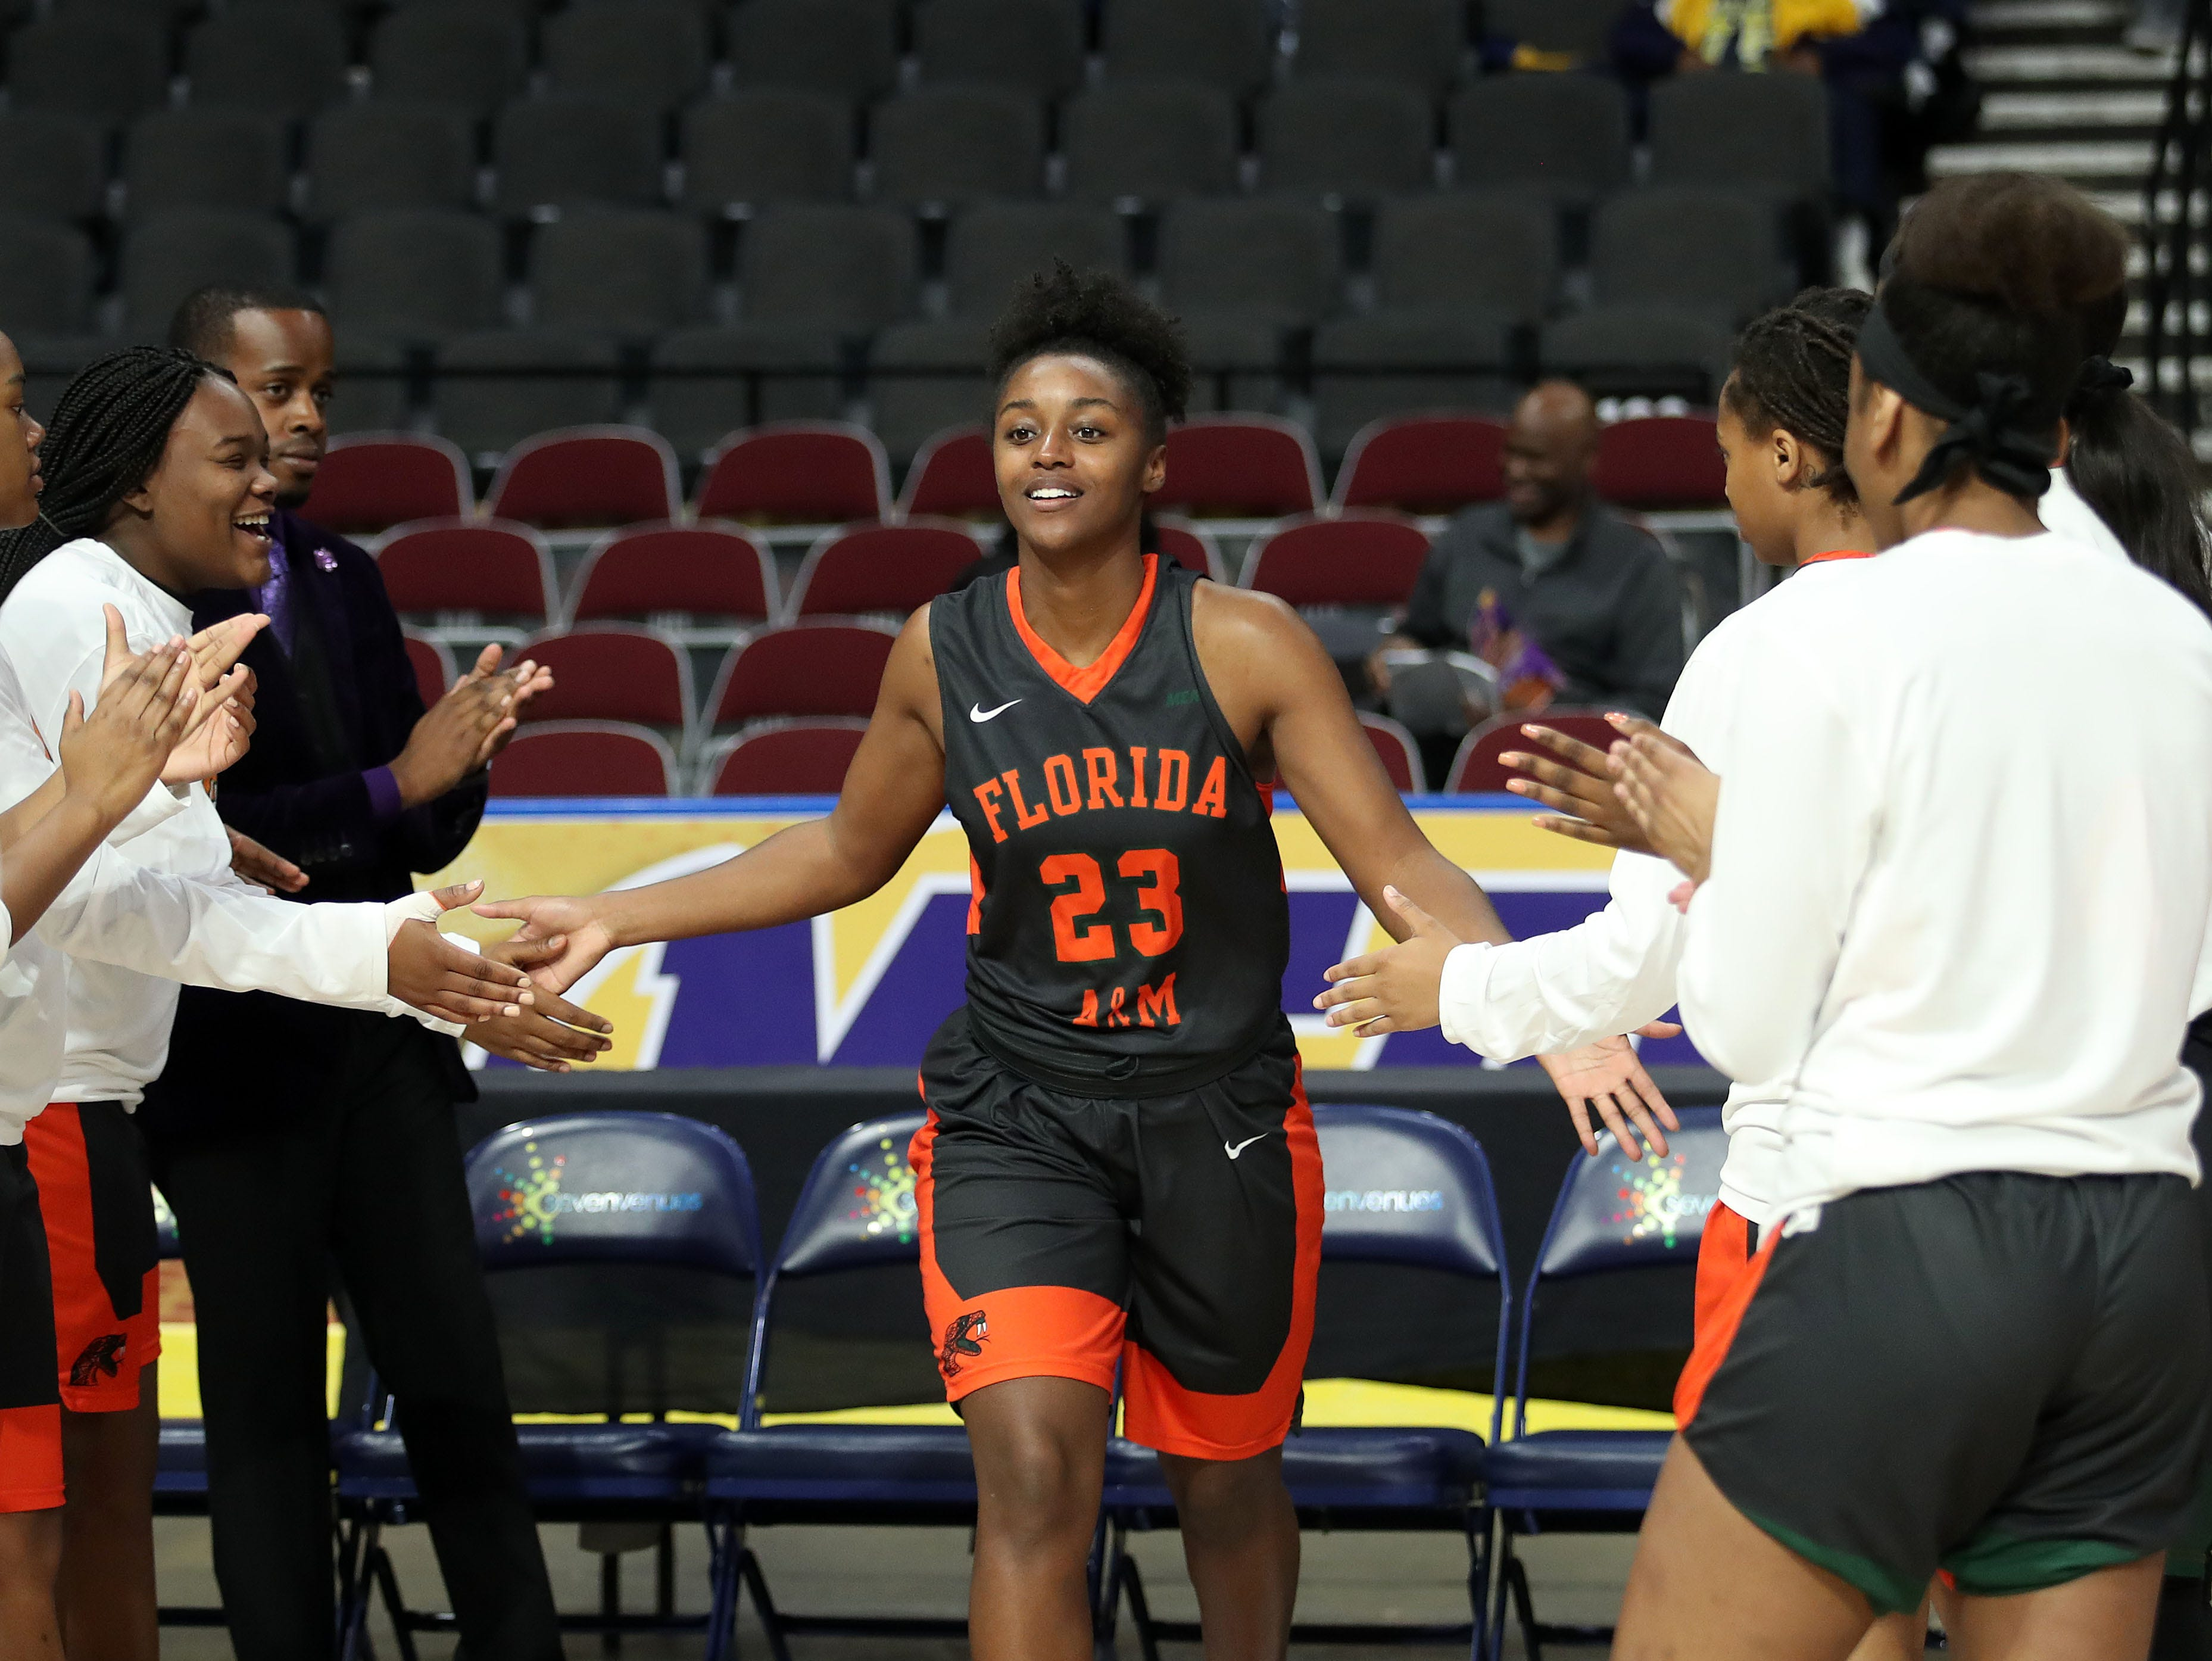 FAMU senior Taylor Darks takes the court during the pregame introduction during the MEAC tournament on Monday, March 11, 2019.